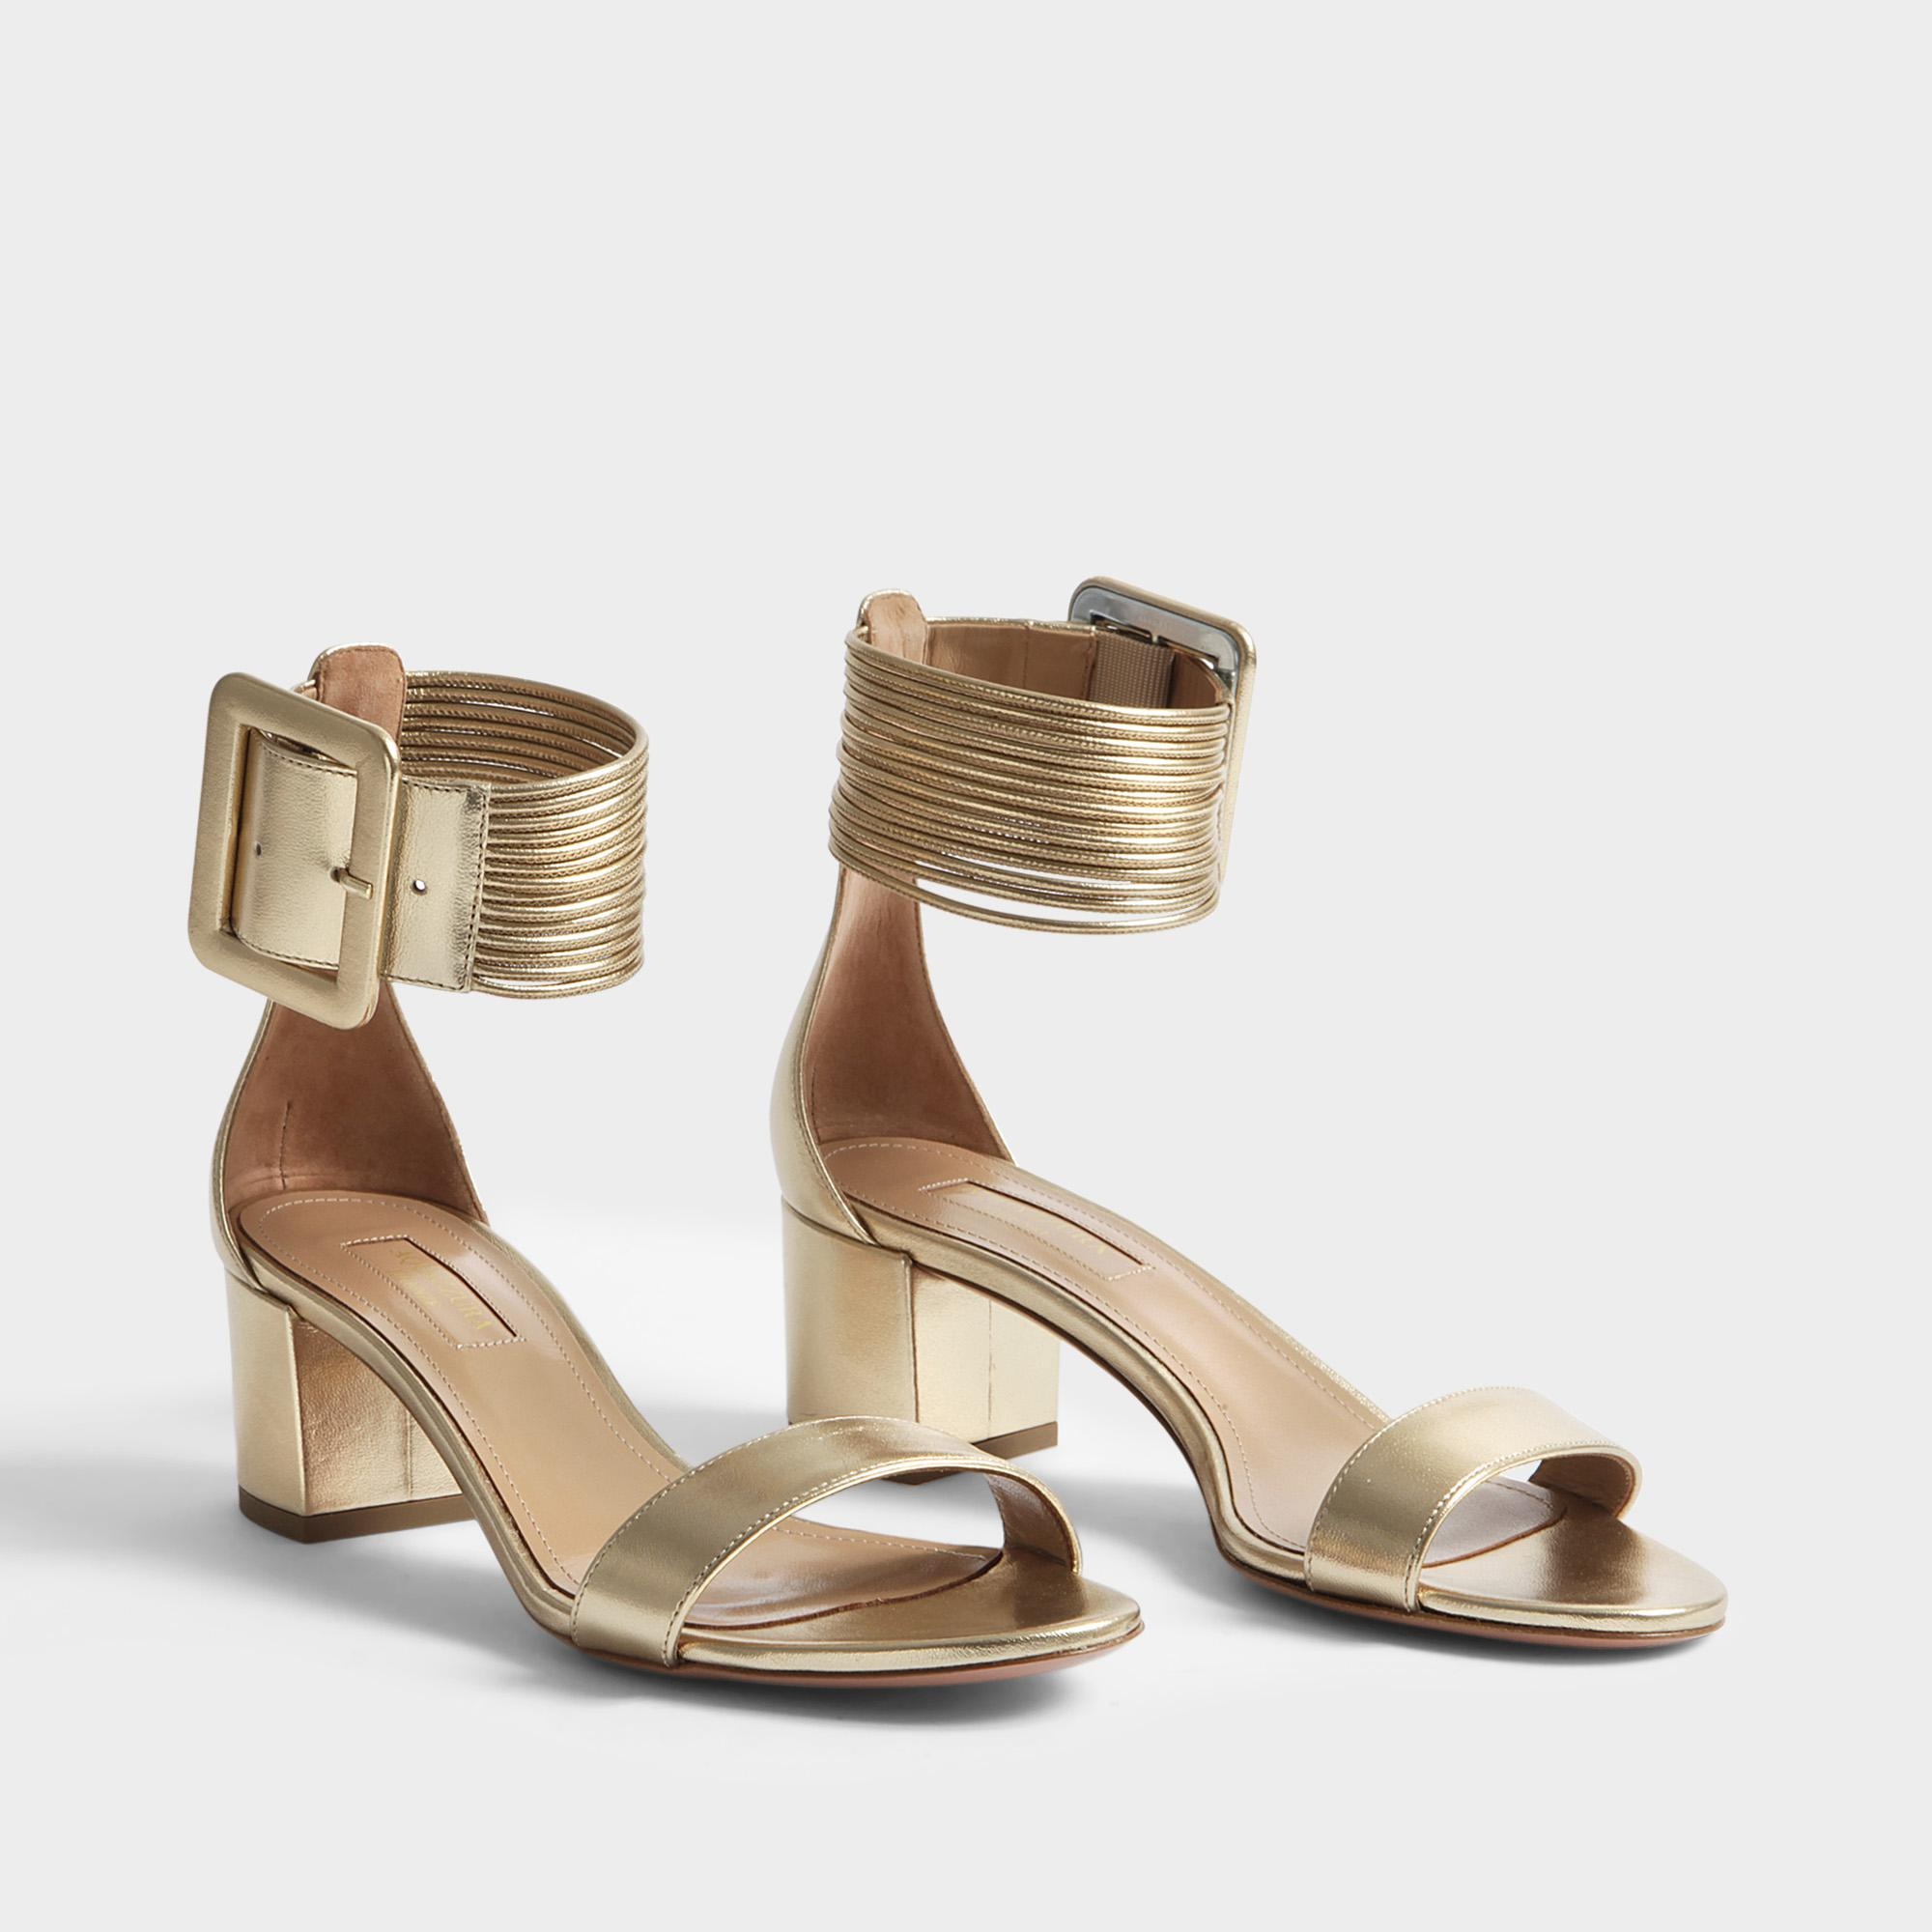 Cheap Hot Sale Perfect Online Casablanca Sandals 50 in Soft Gold Nappa Laminata Leather Aquazzura Buy Cheap Pay With Visa Free Shipping Outlet TknsB